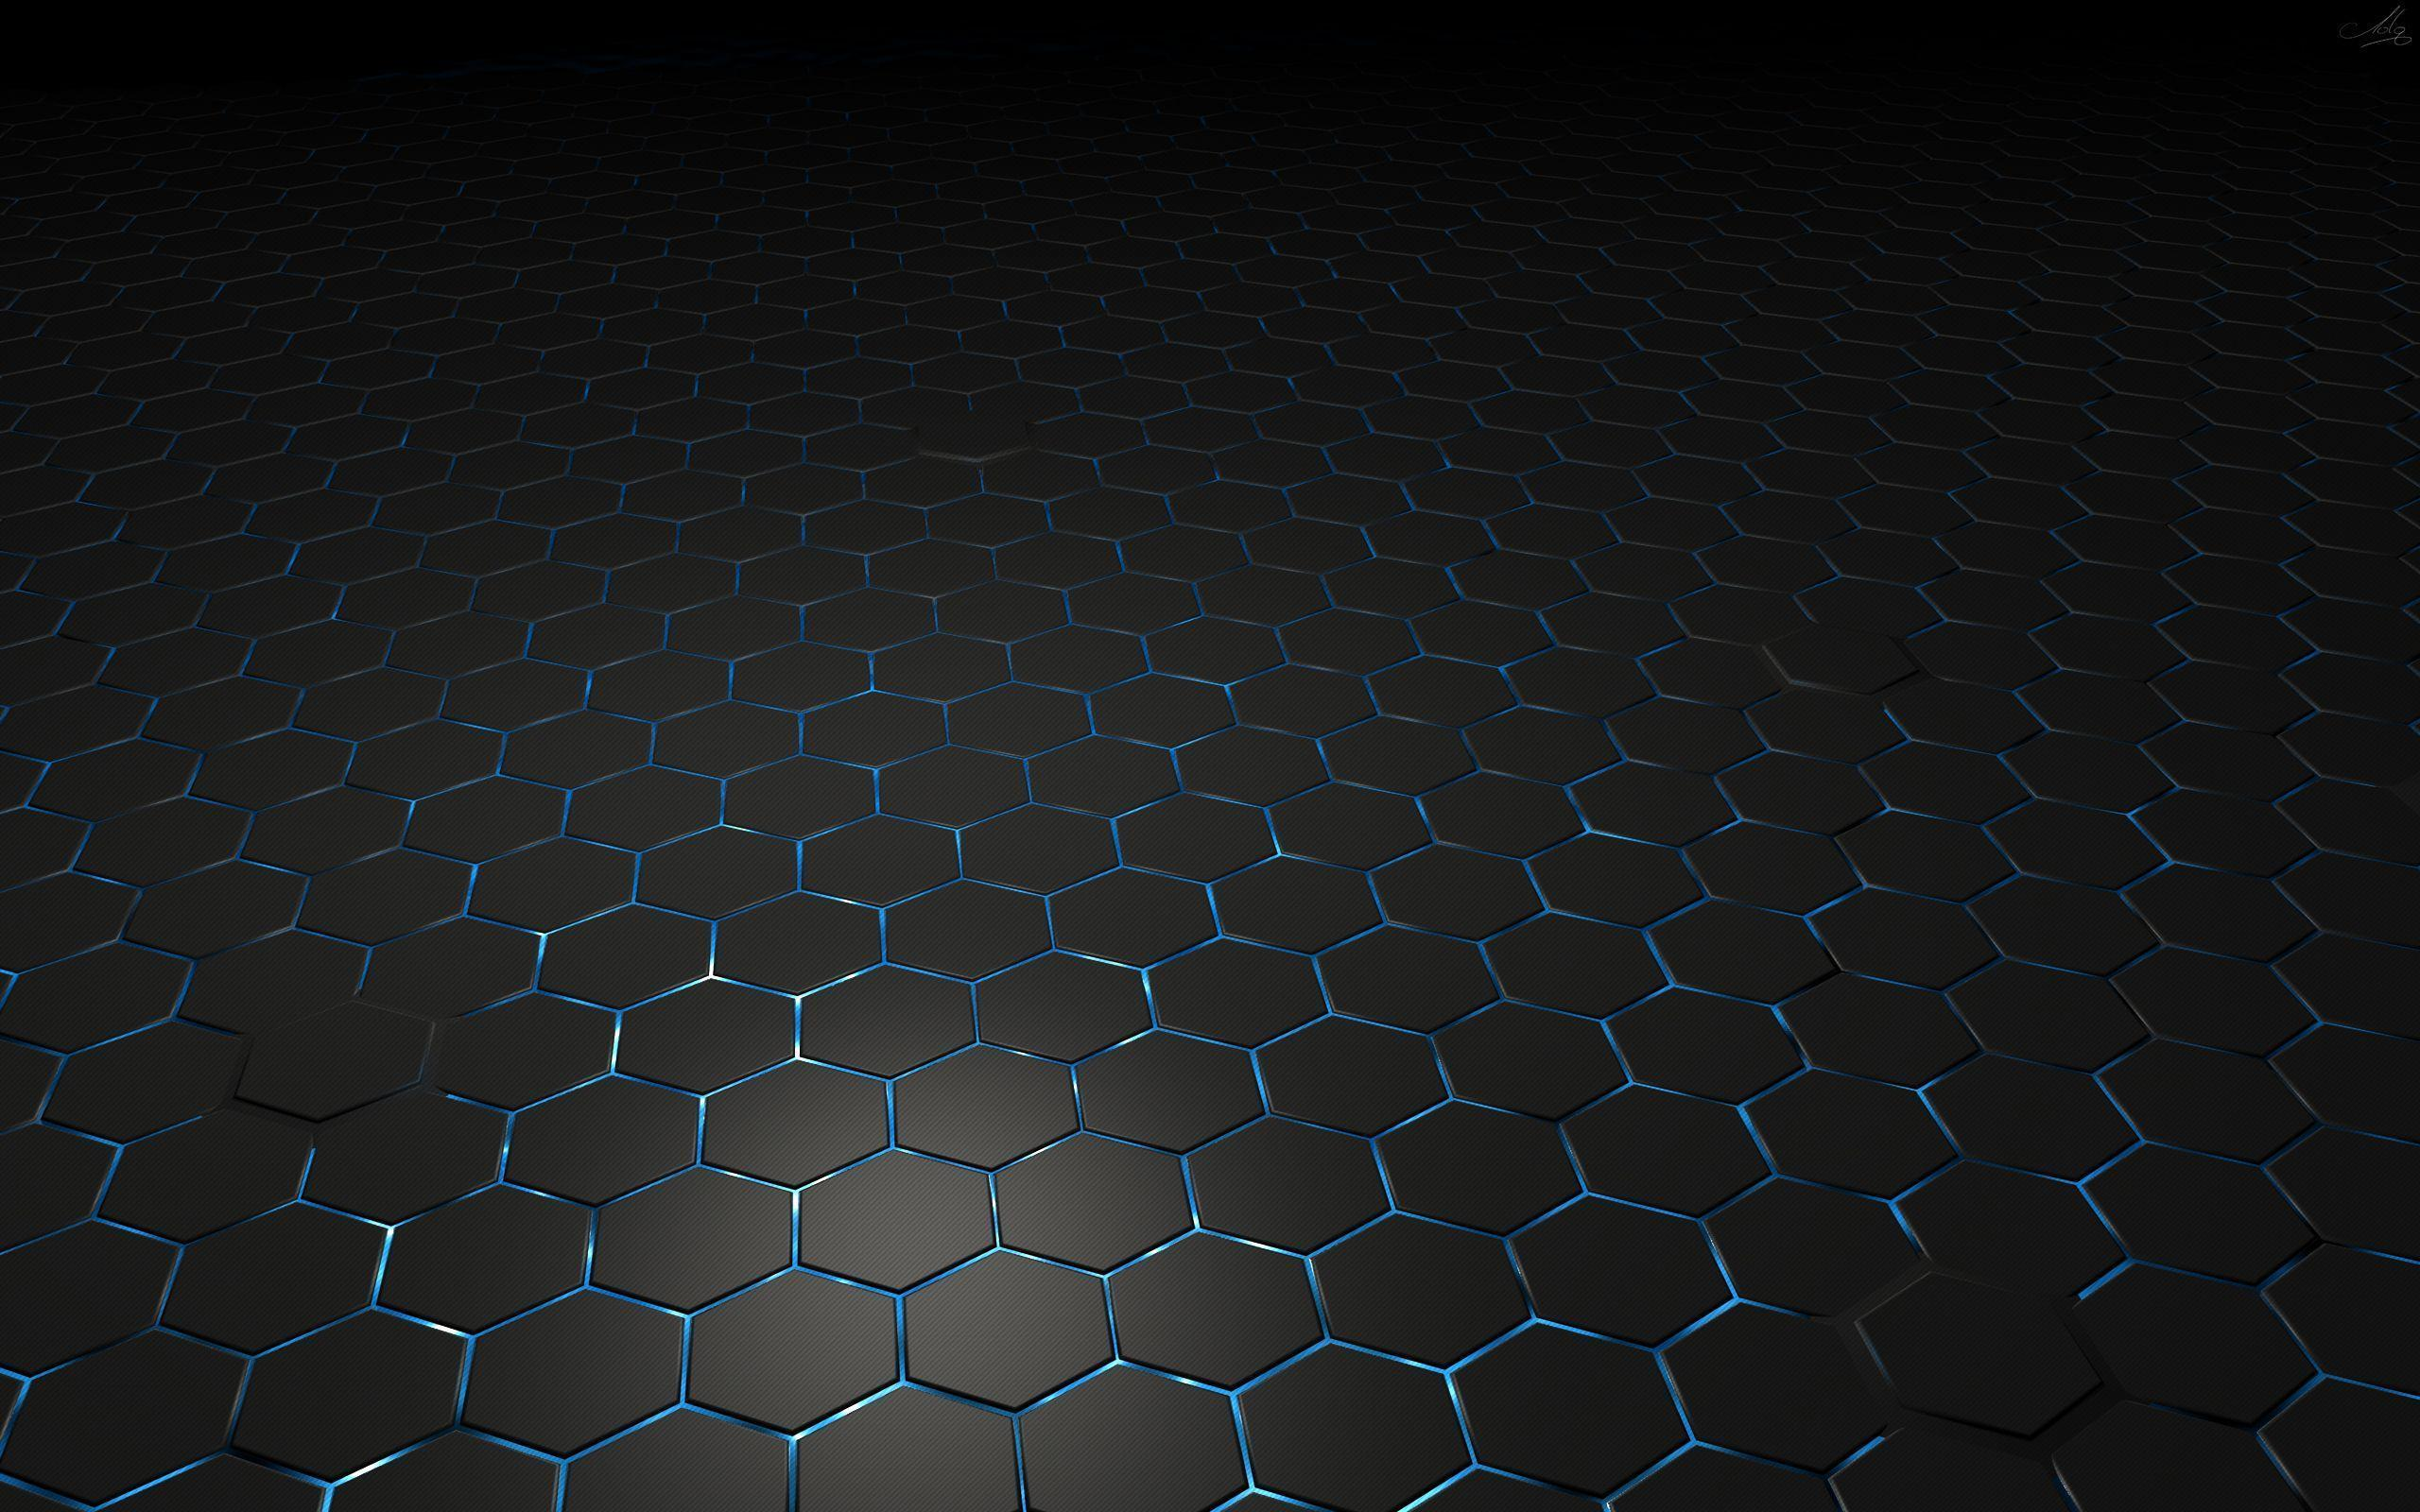 31 Hexagon HD Wallpapers | Backgrounds - Wallpaper Abyss